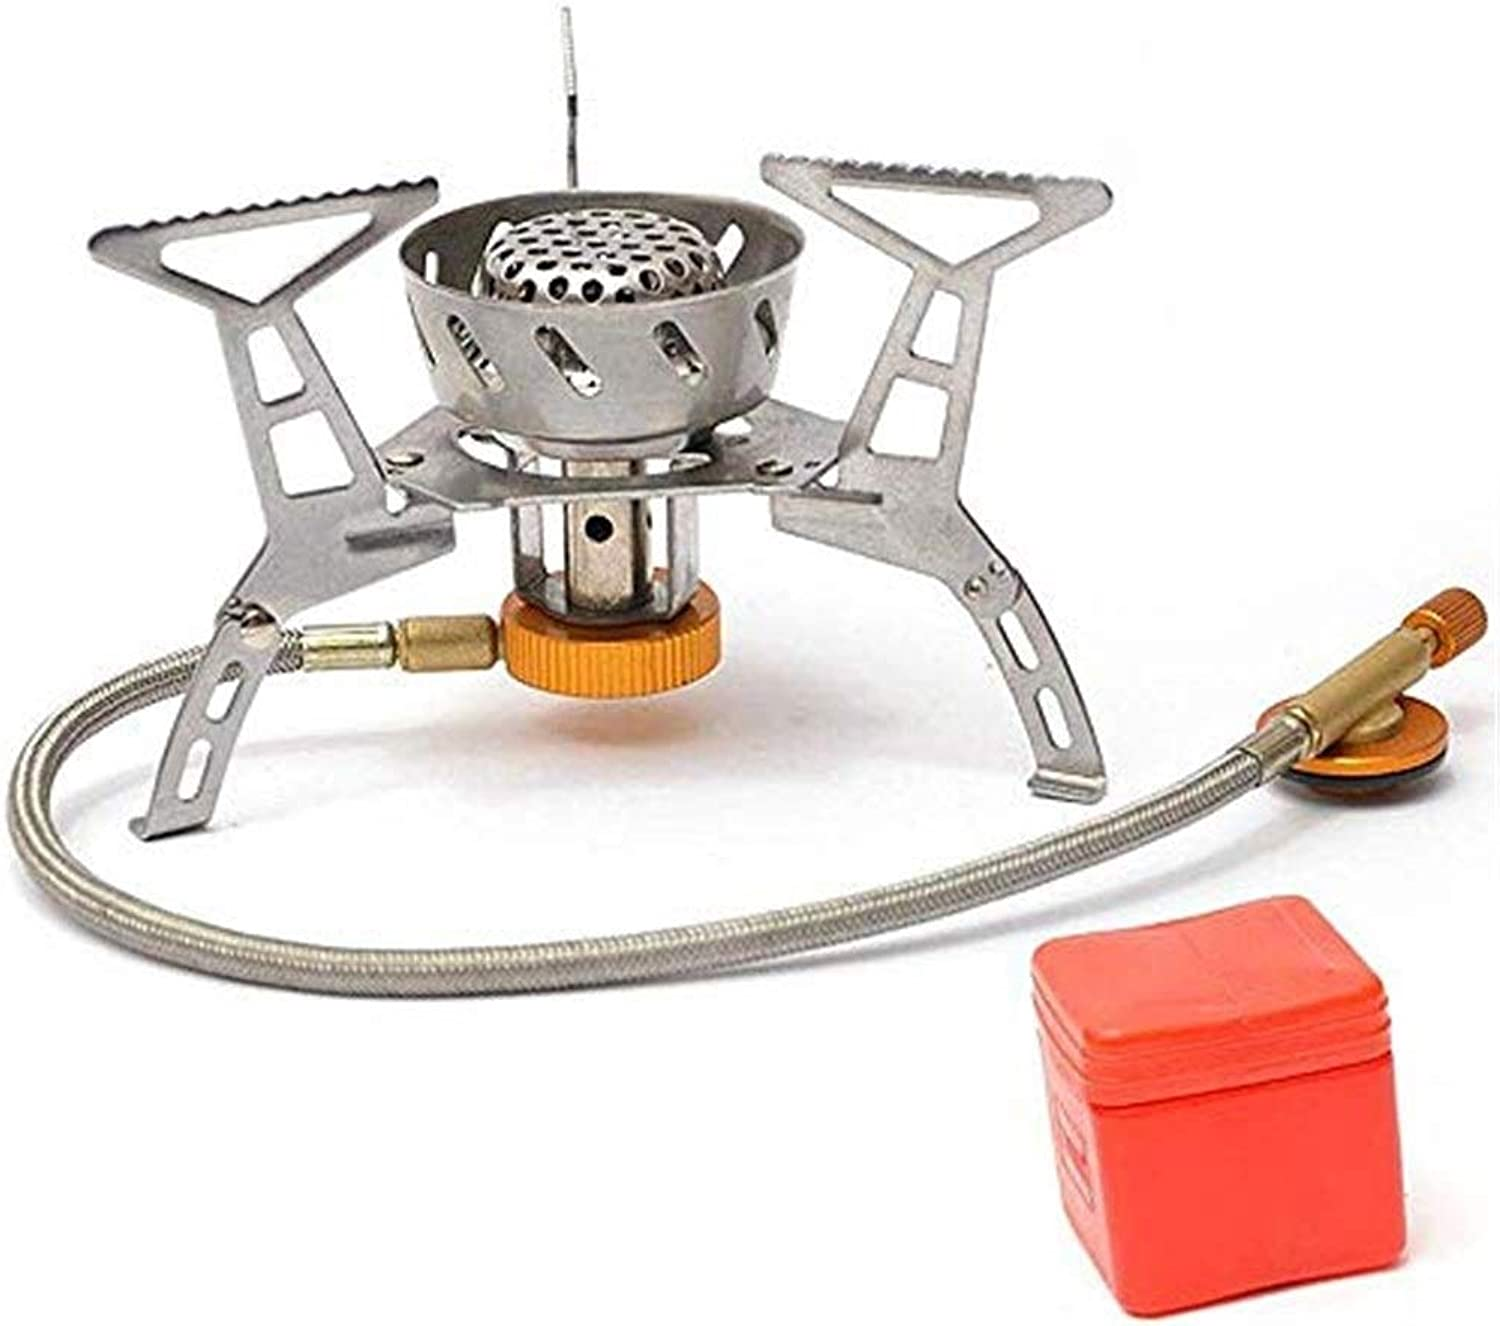 Camping Cooking Utensil Camping Stove, Mini Split Collapsible Windproof Outdoor Burner Fierce Gas Stove Suitable for Camping Outdoor Activities Hiking Hiking Mountaineering Grill Stove